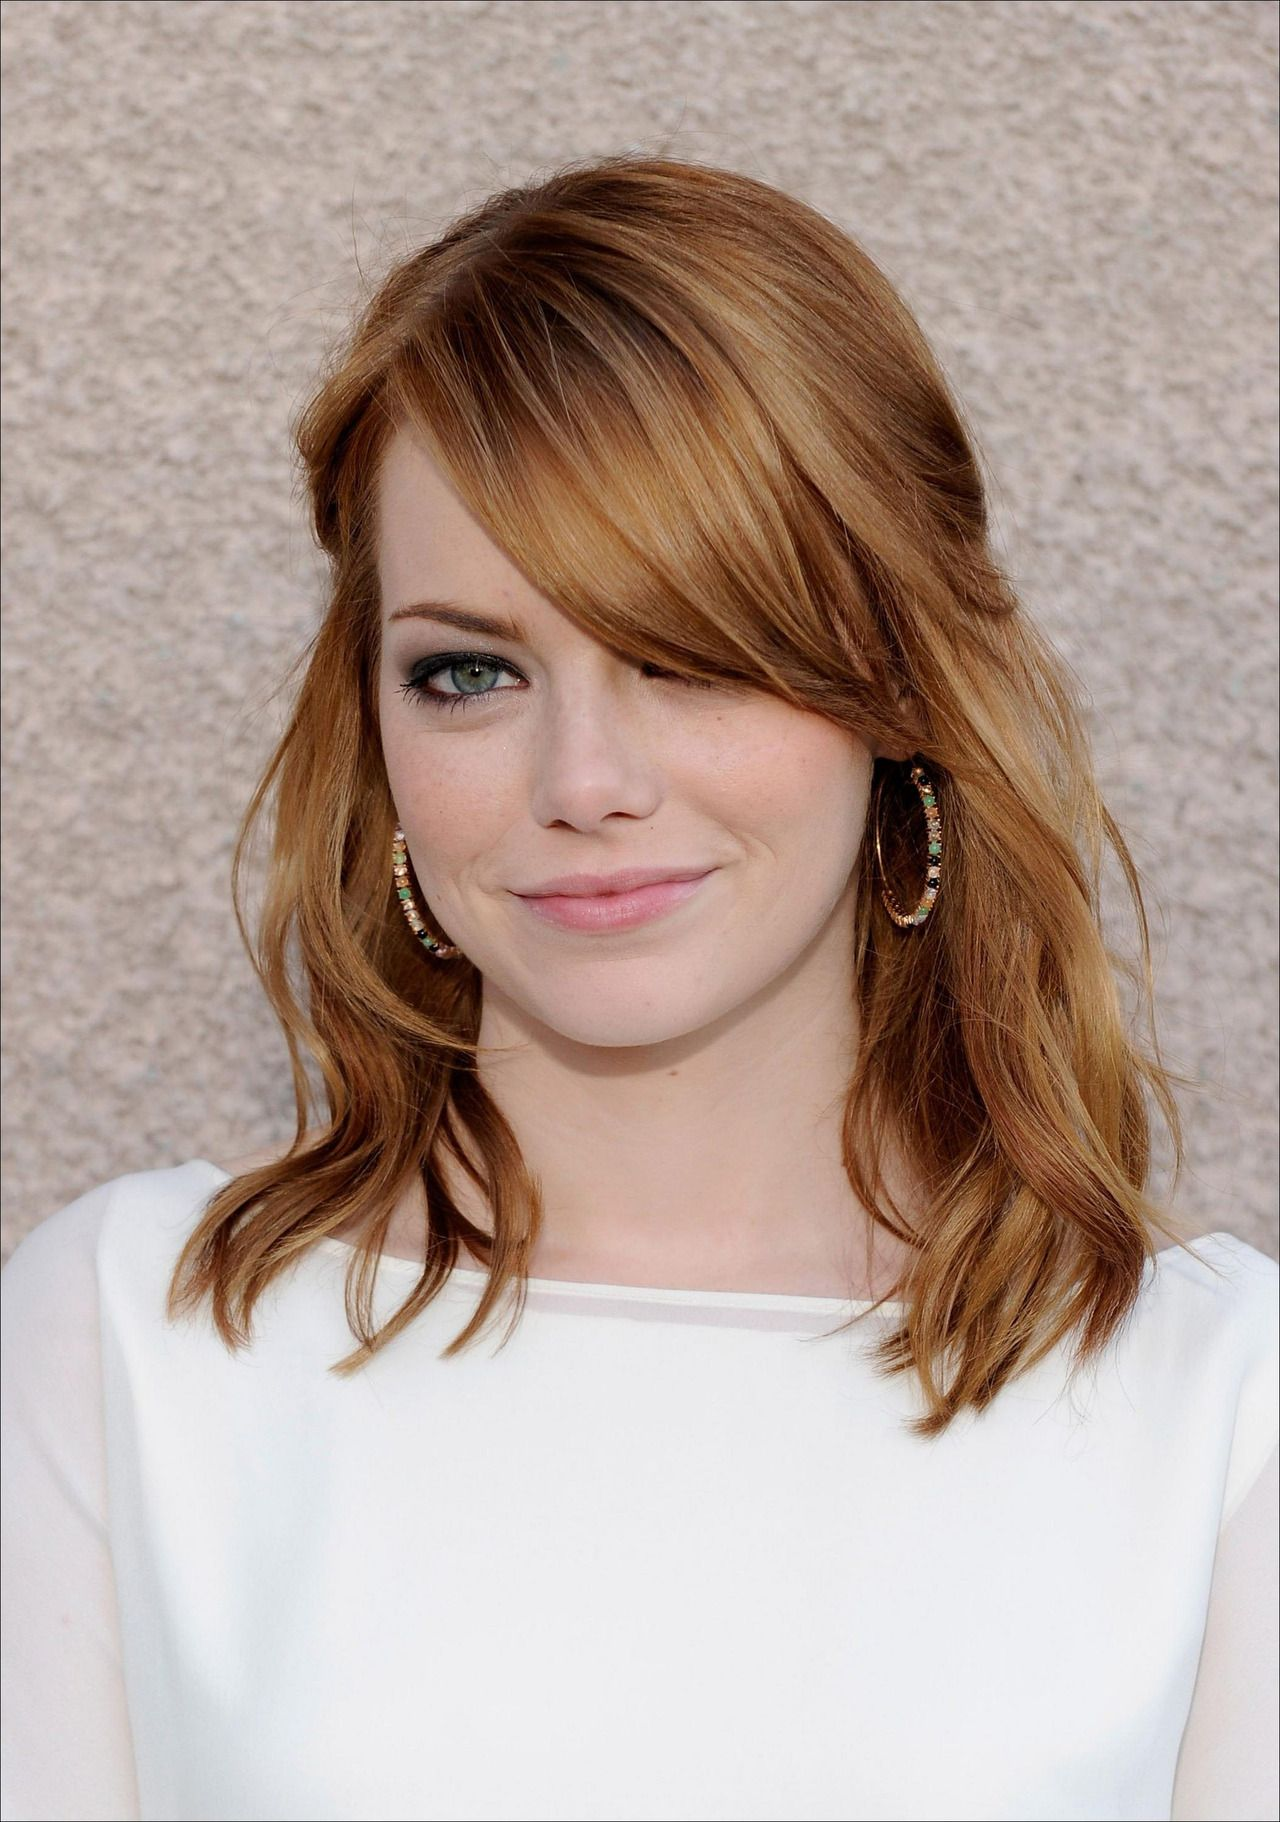 Emma stone emma stone pinterest emma stone stone and hair